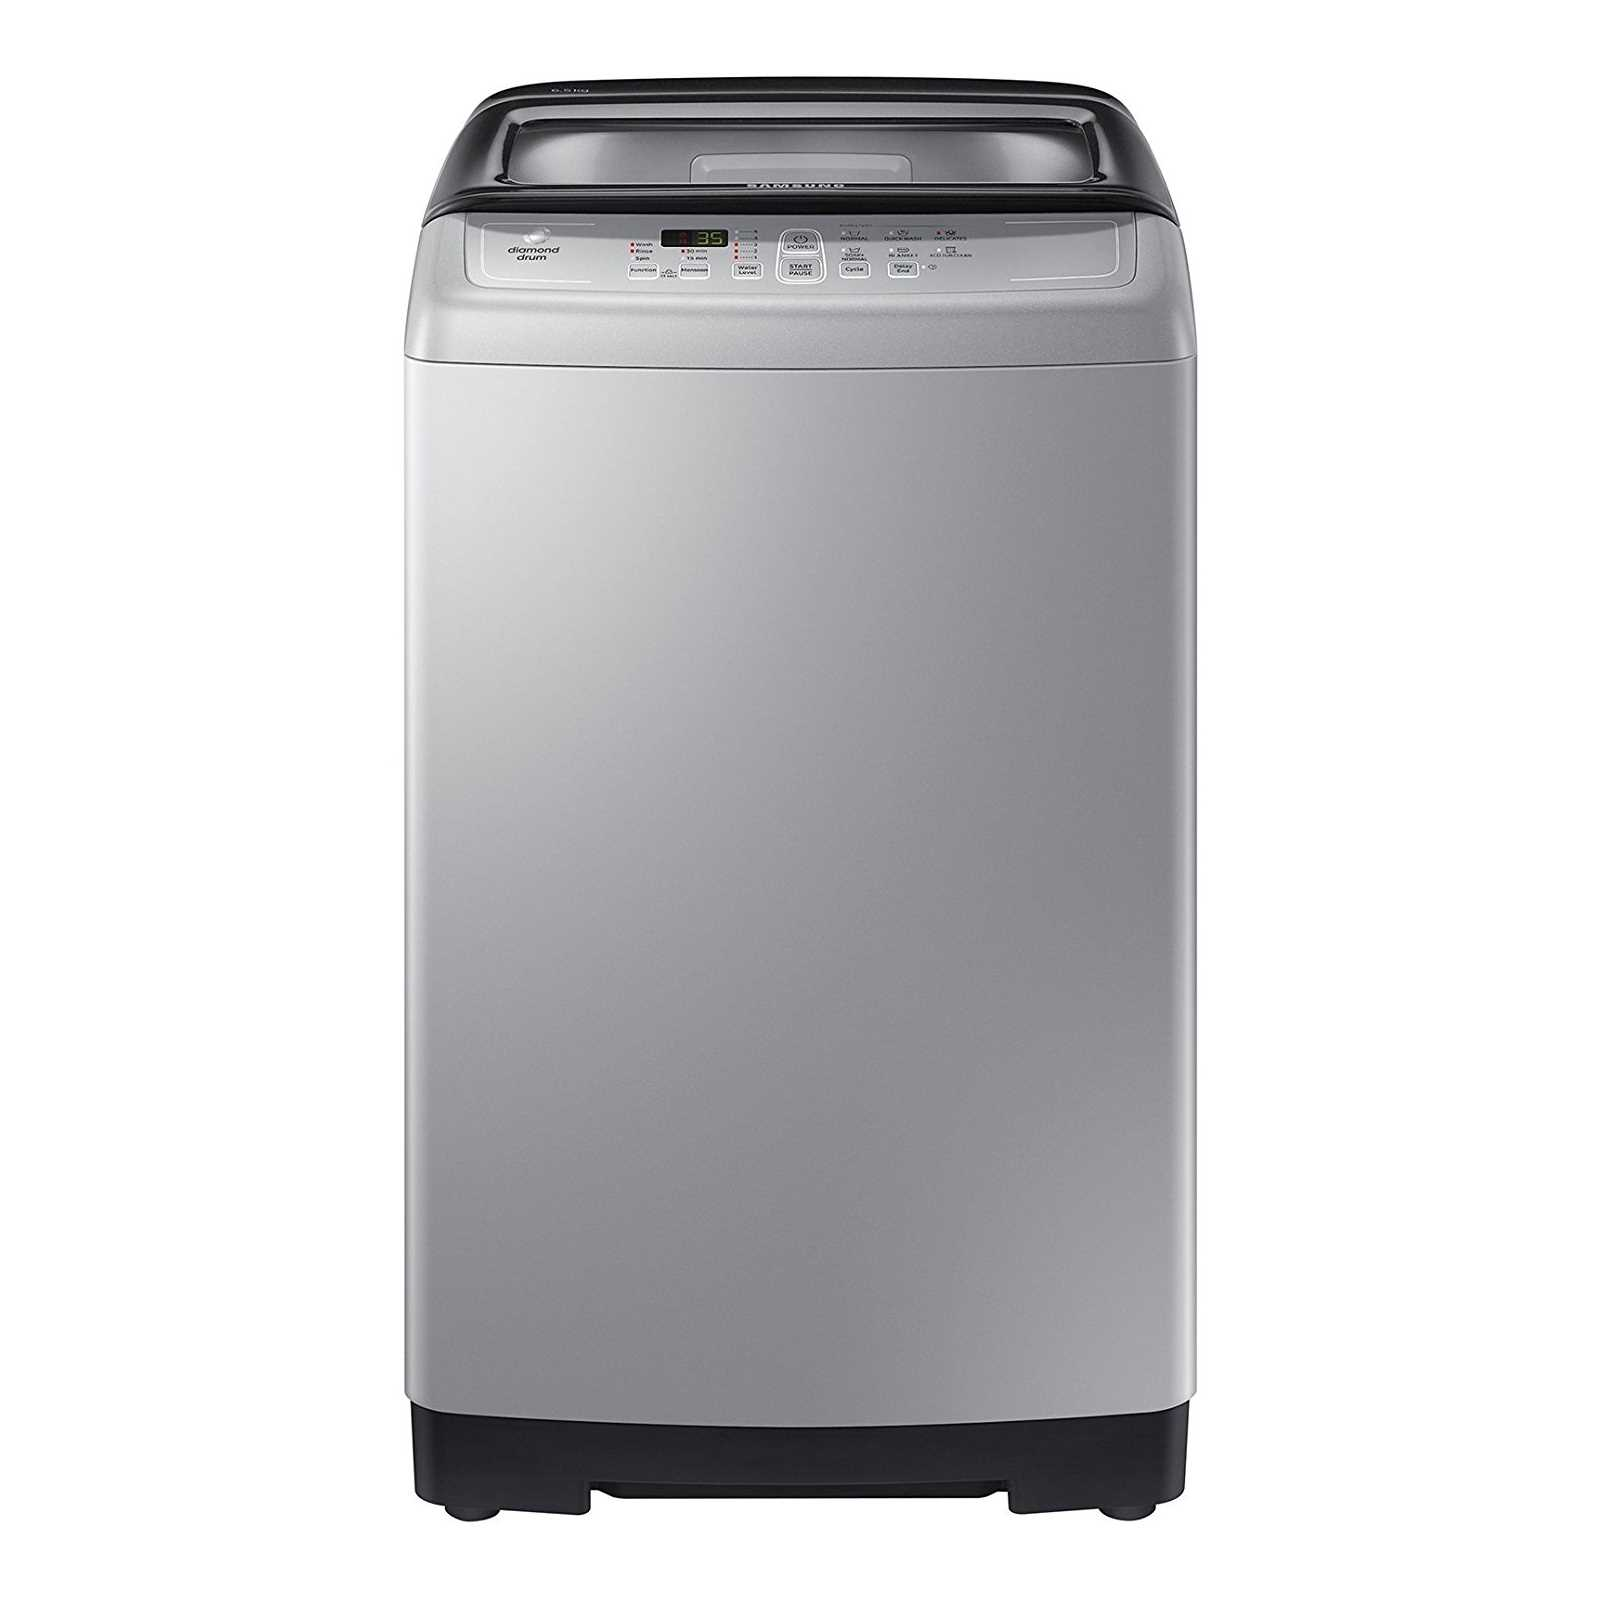 Samsung WA65M4100HV TL 6.5 Kg Fully Automatic Top Loading Washing Machine